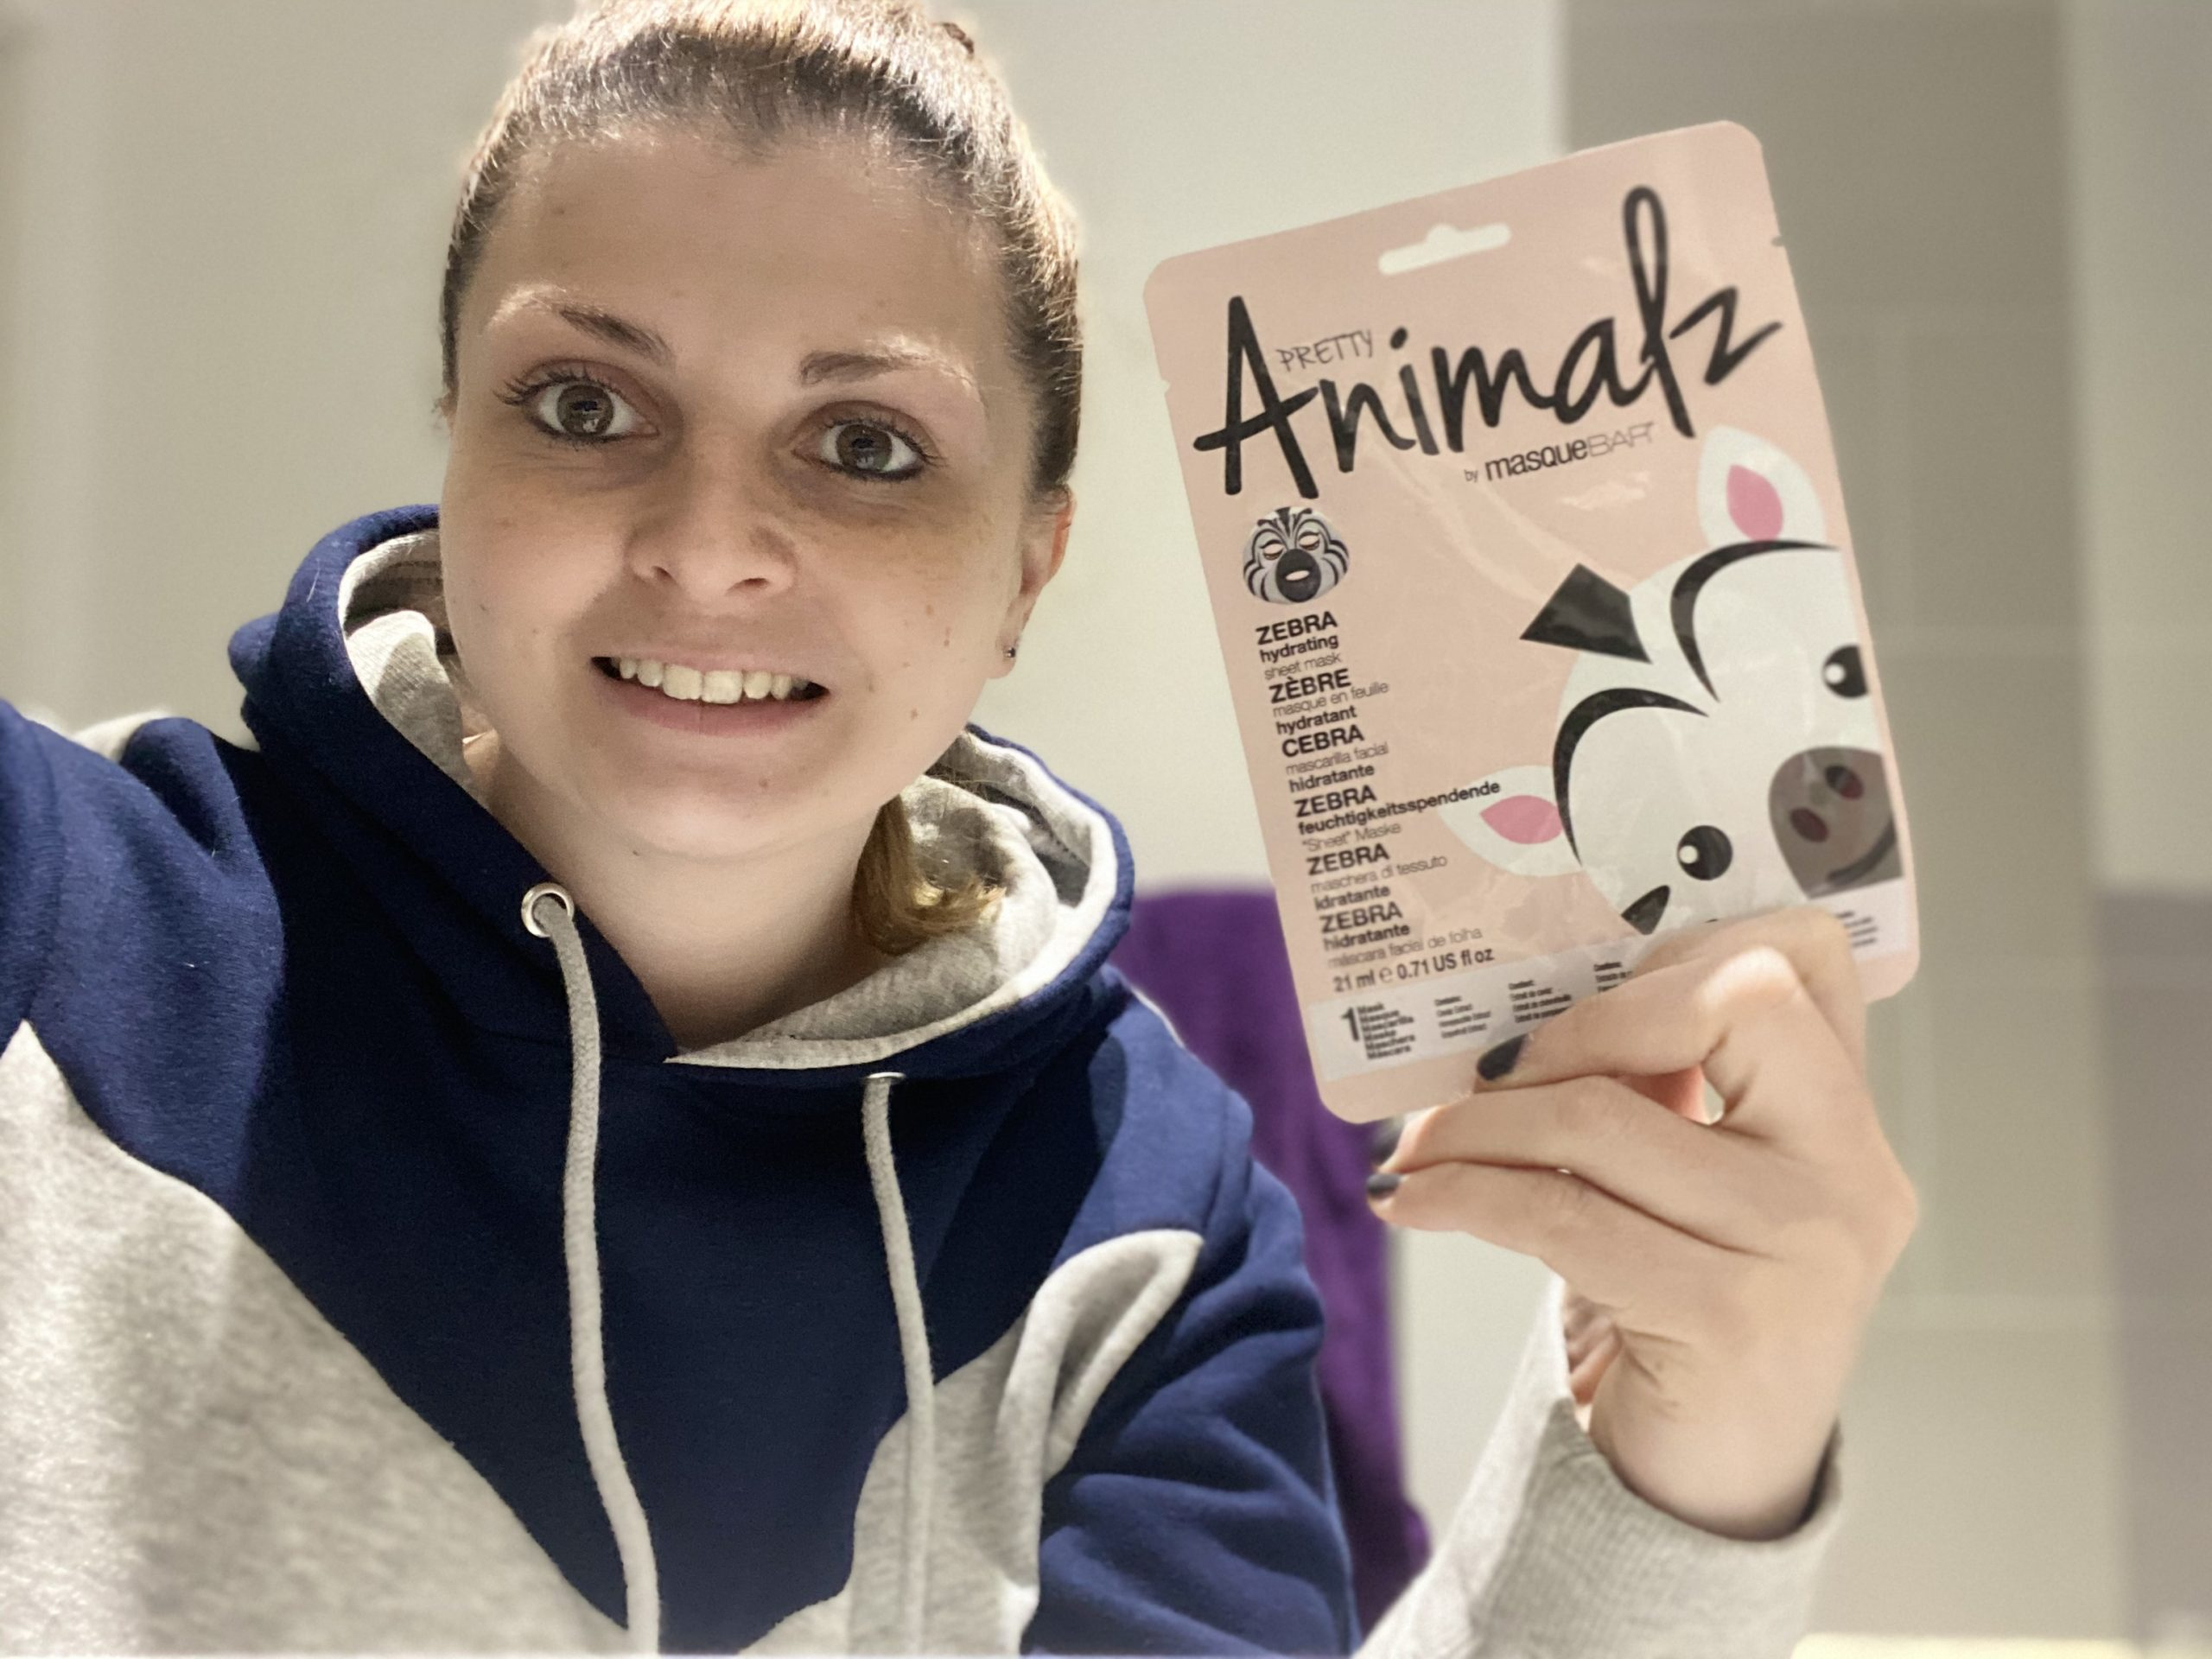 Masque Bar Pretty Animalz Zebra Mask Review graphic